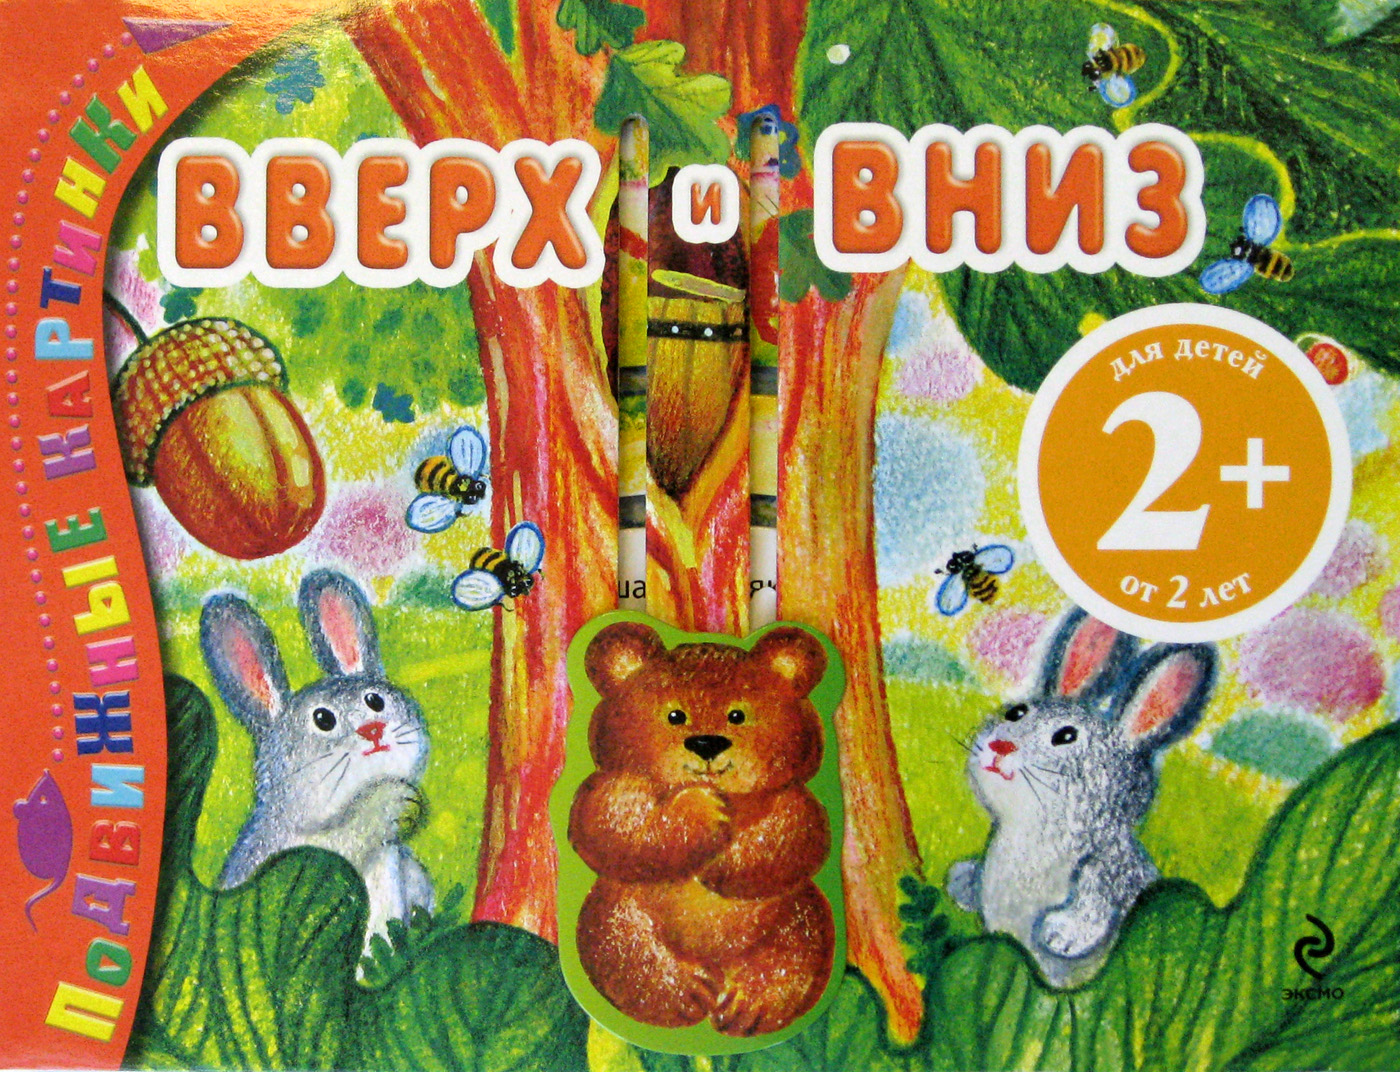 Елена Янушко Вверх и вниз jenny dooley virginia evans happy rhymes 2 nursery rhymes and songs pupil s book